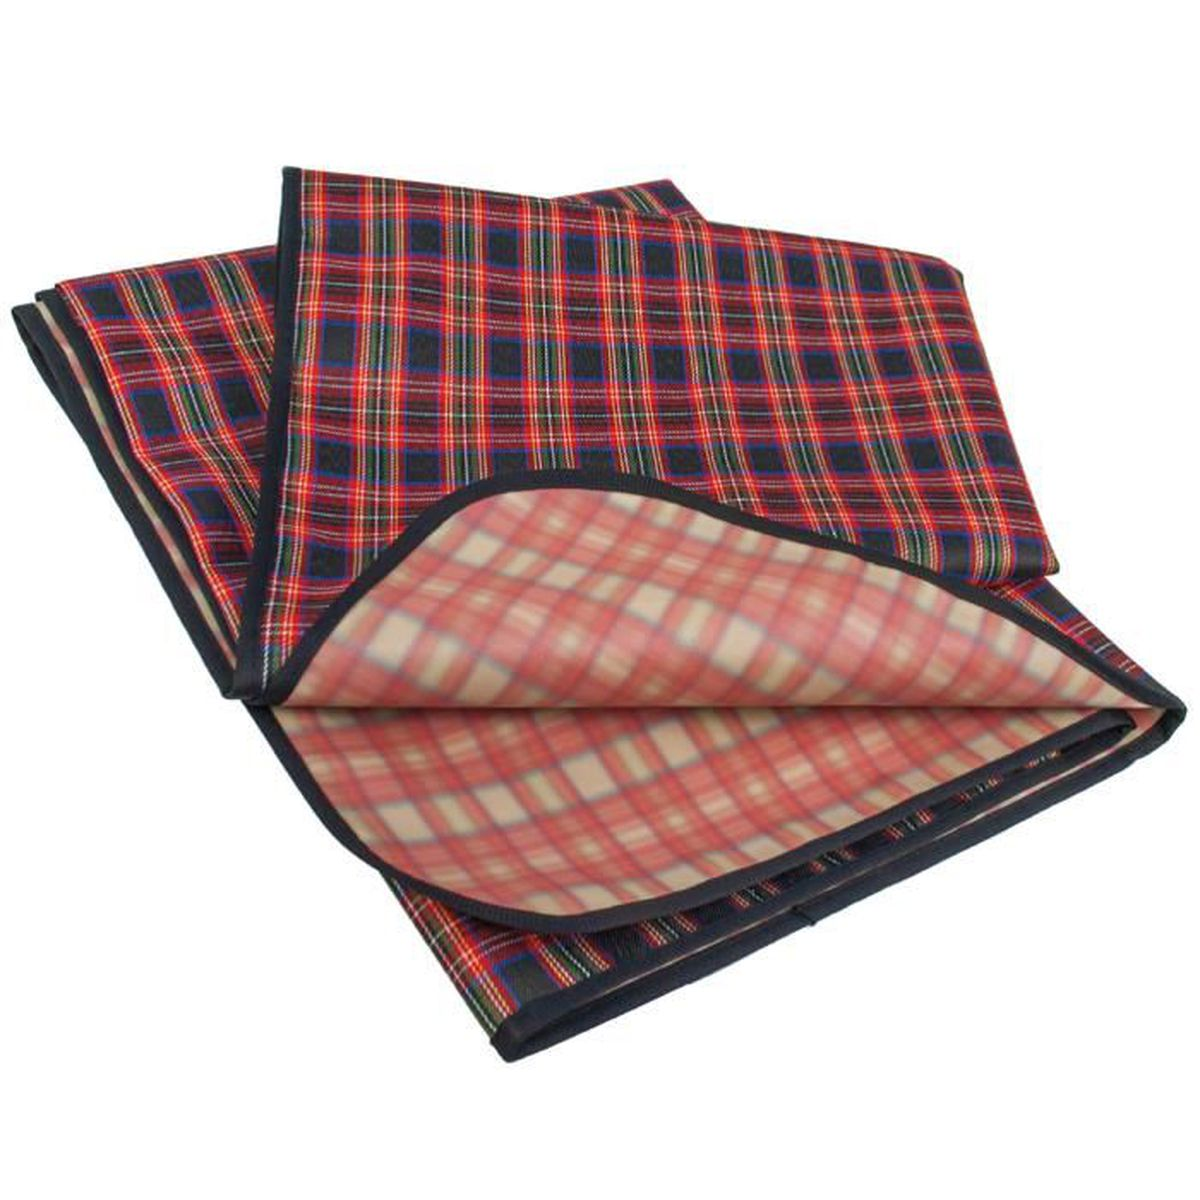 plaid tanche couverture imperm able pour pique nique 130x150 cm picnic rando prix pas cher. Black Bedroom Furniture Sets. Home Design Ideas